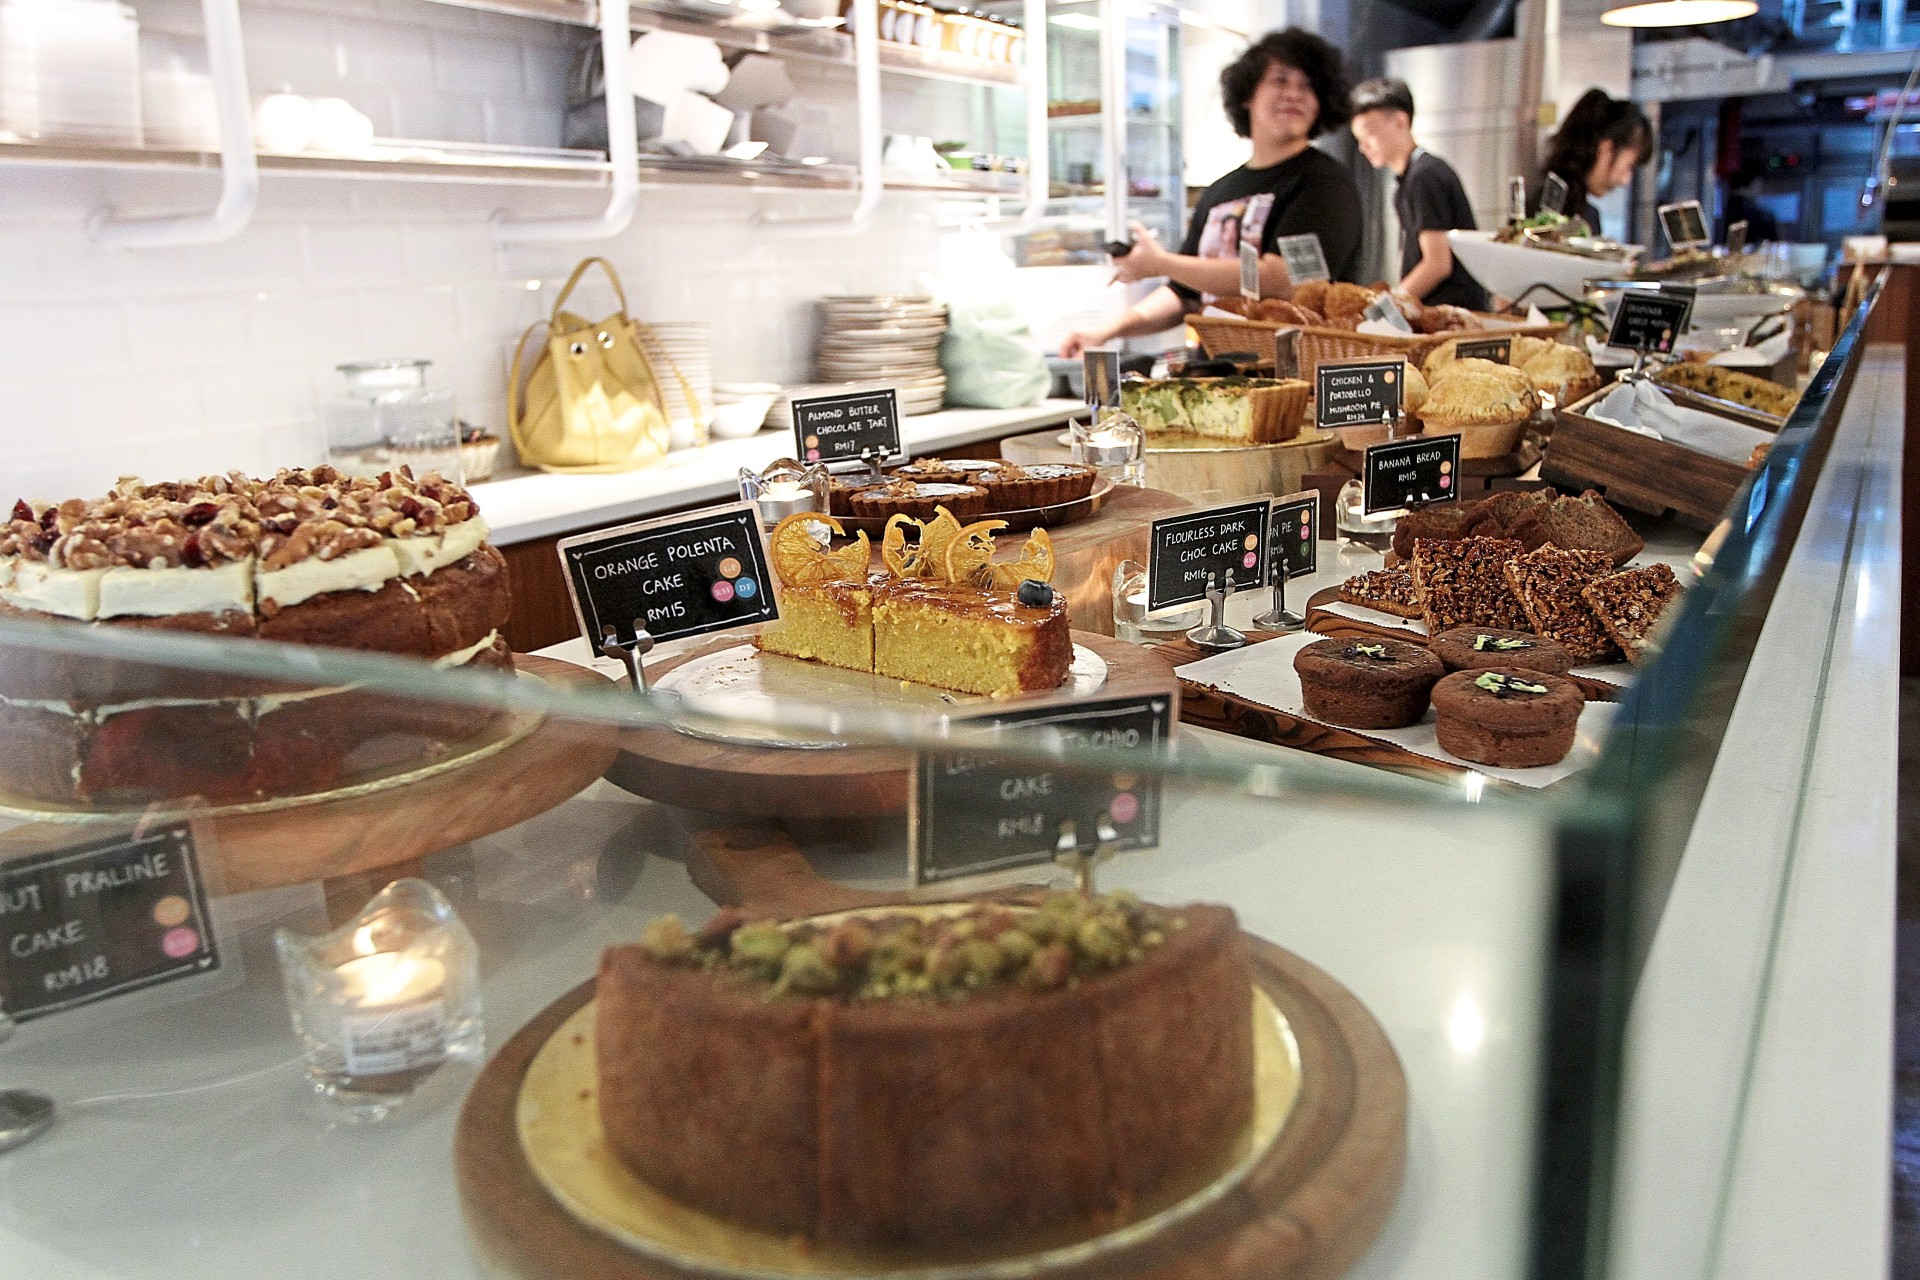 All the desserts at Nourish are gluten-free and refined sugar-free.